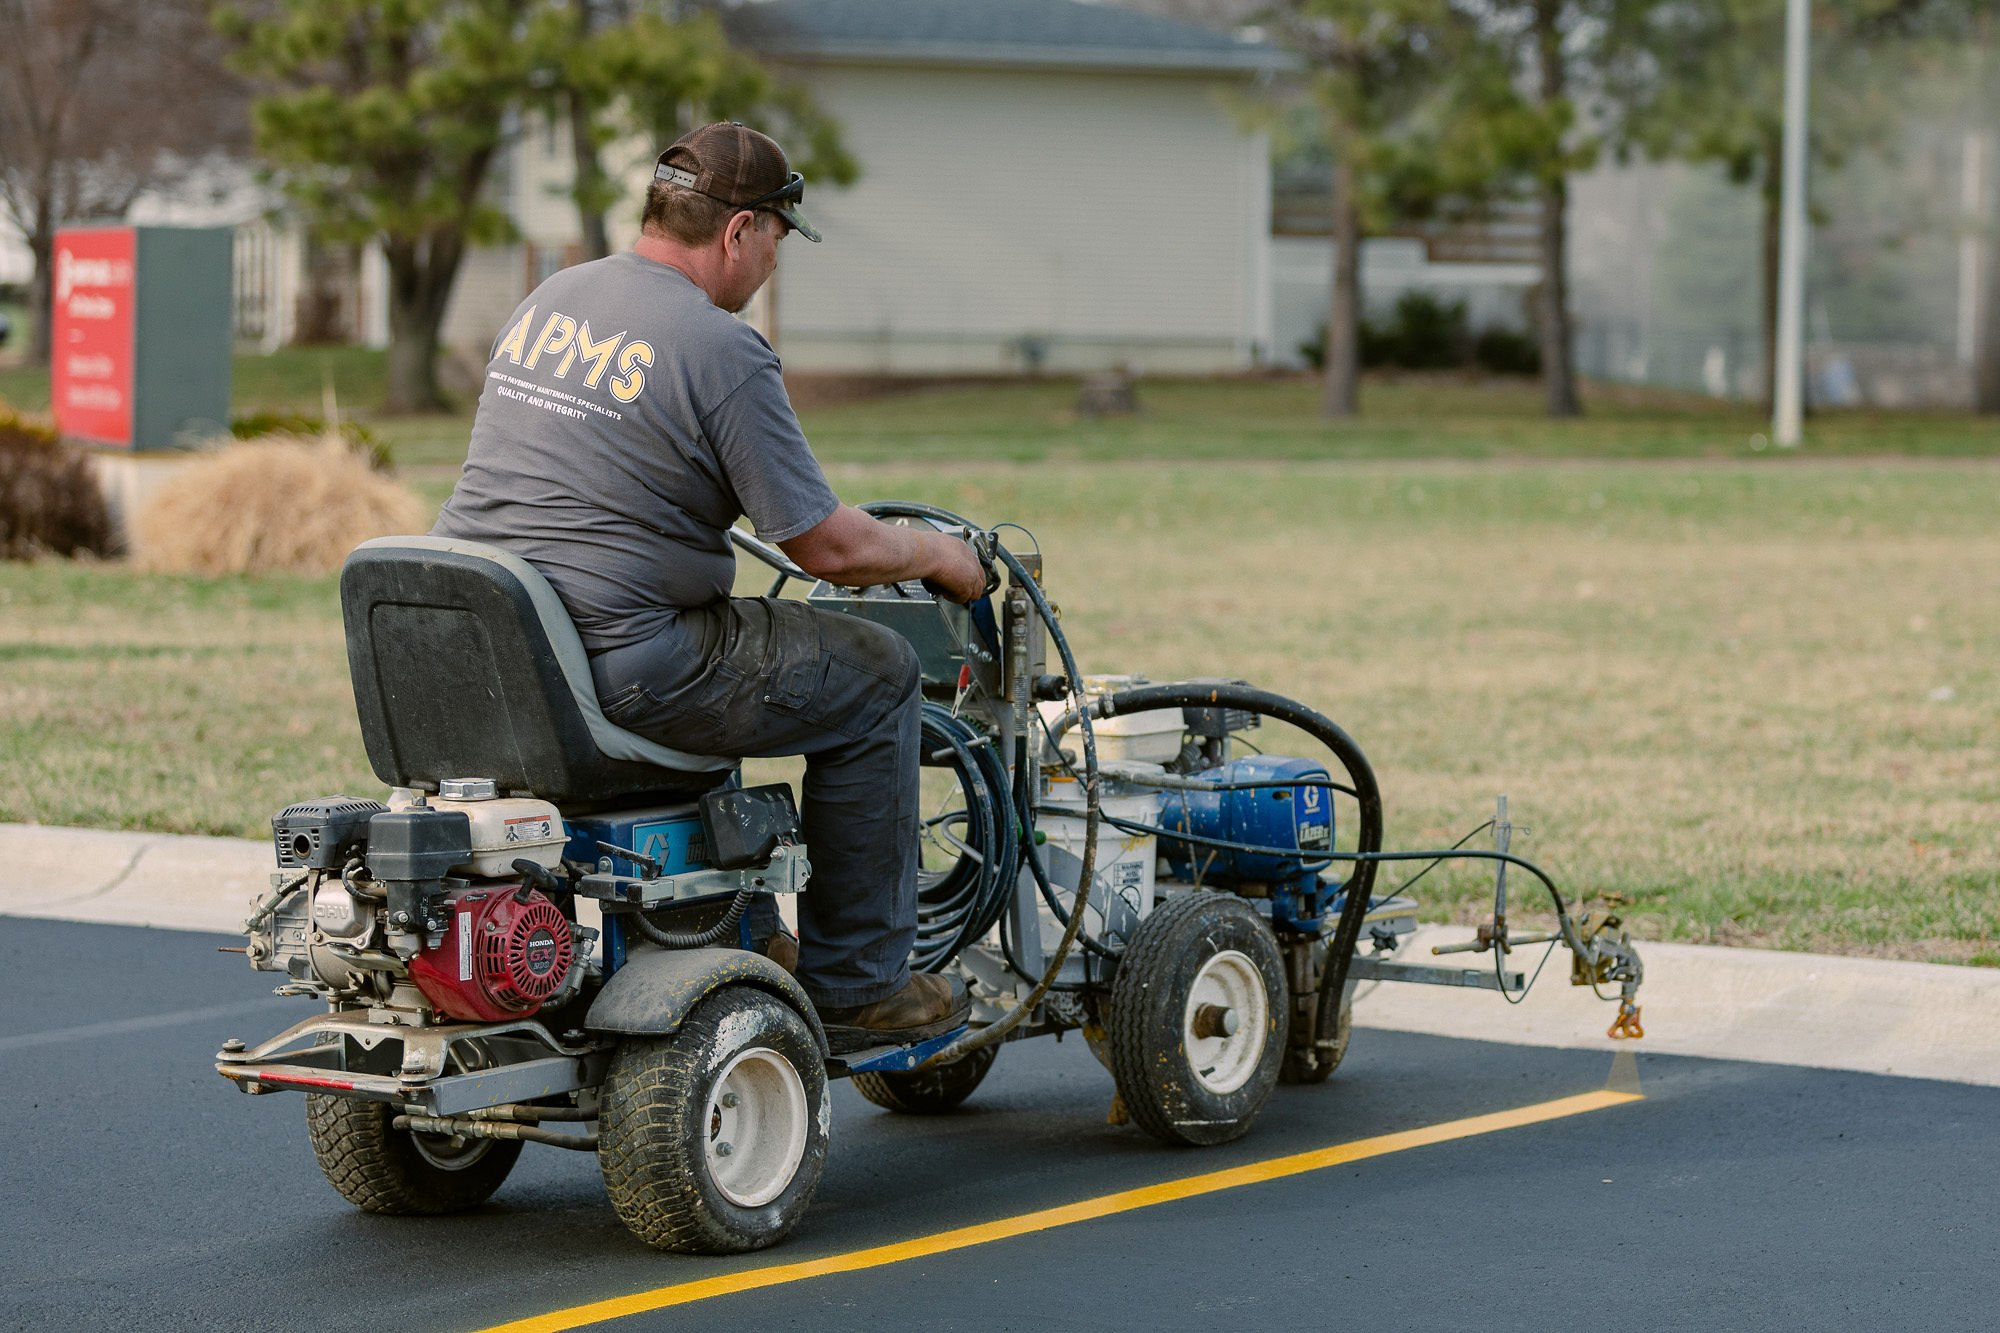 Lincoln Paving and Asphalt Repair apms 1292 - APMS Lincoln Paving Services